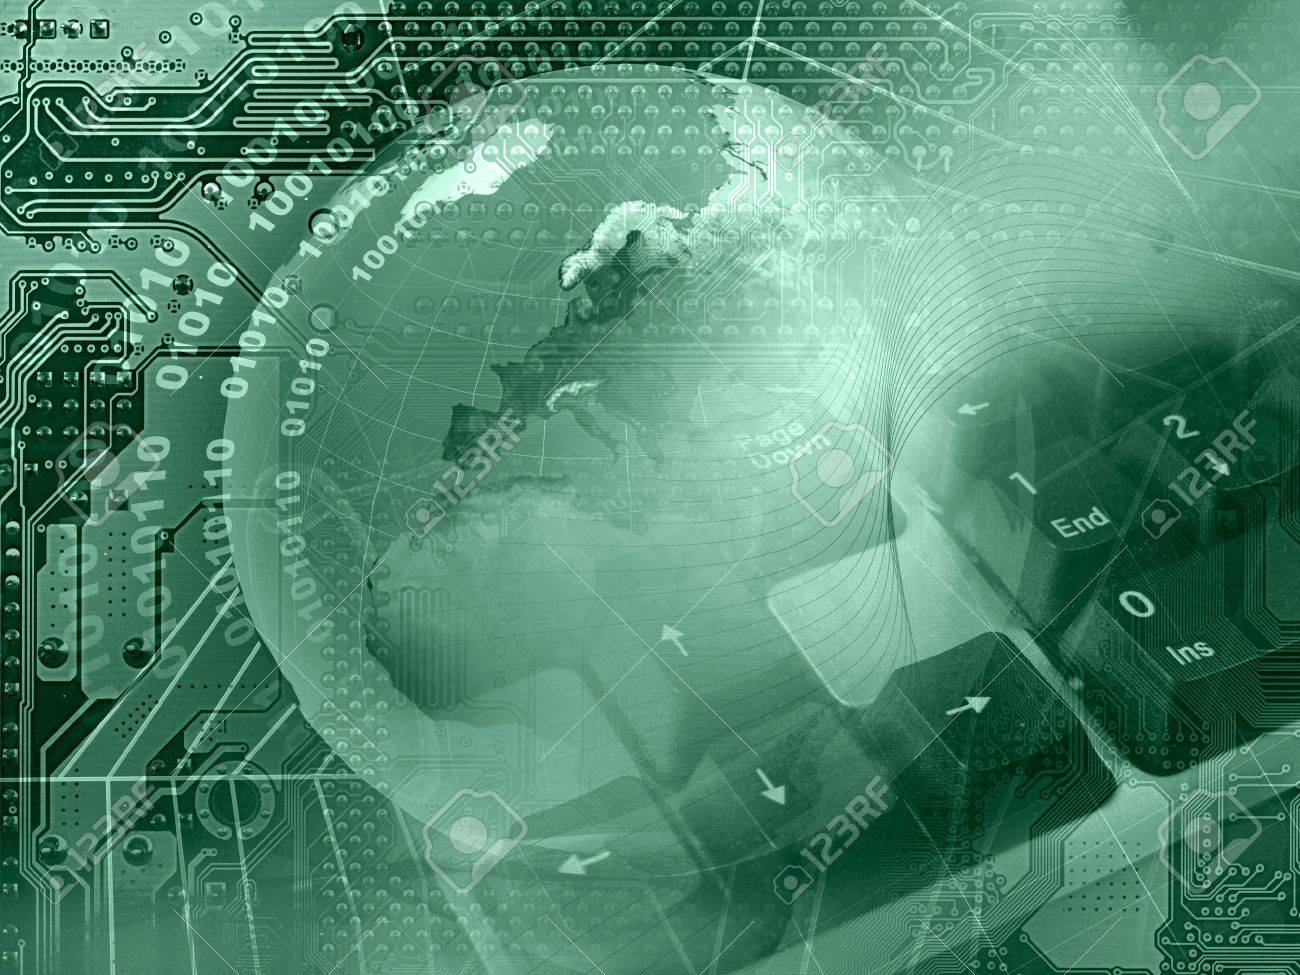 Abstract collage - globe, keyboard and cobweb on electronic background (green). - 7148654